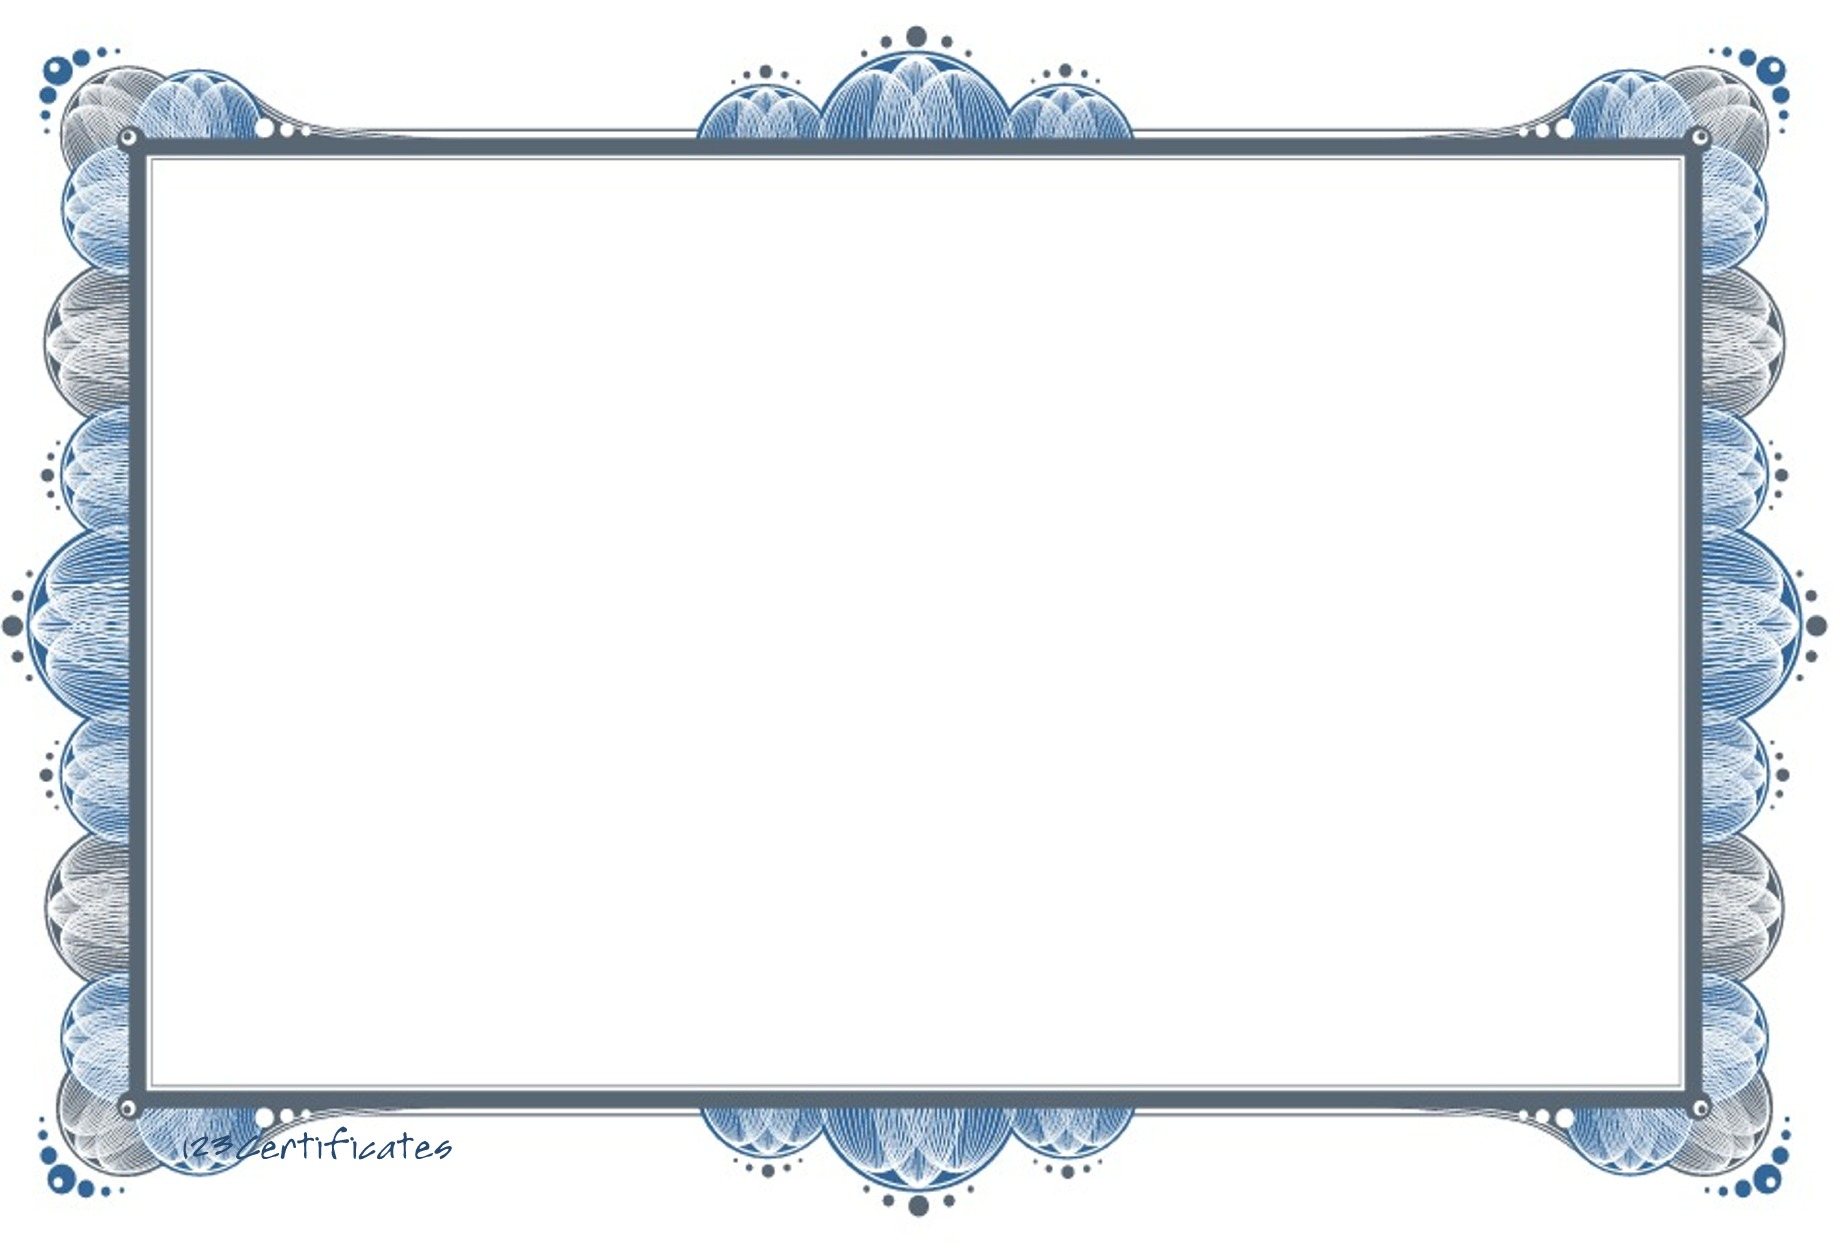 Free certificate borders to download certificate borders free yelopaper Image collections